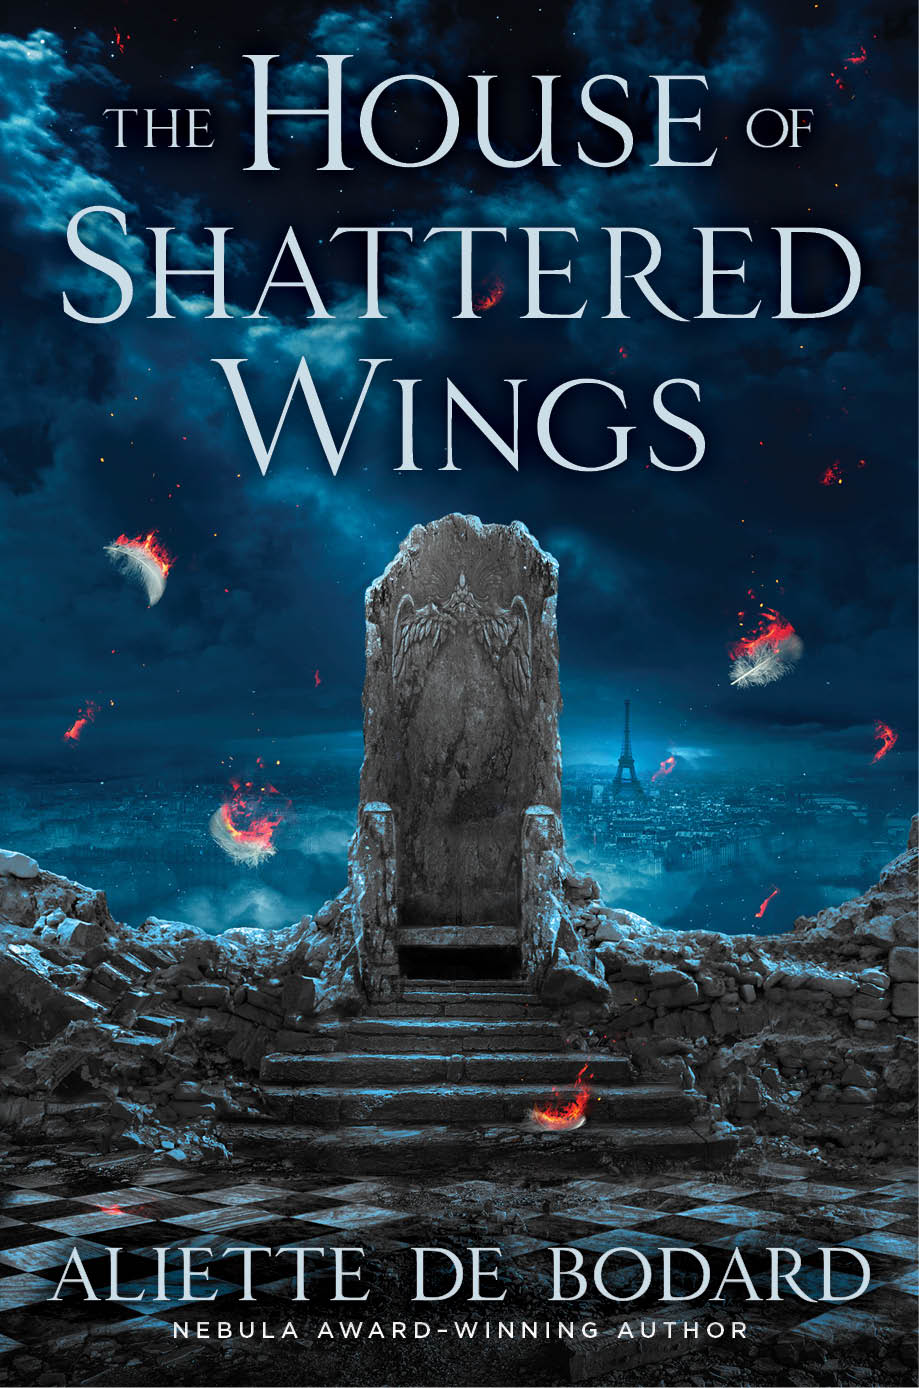 Risultati immagini per the house of the shattered wings